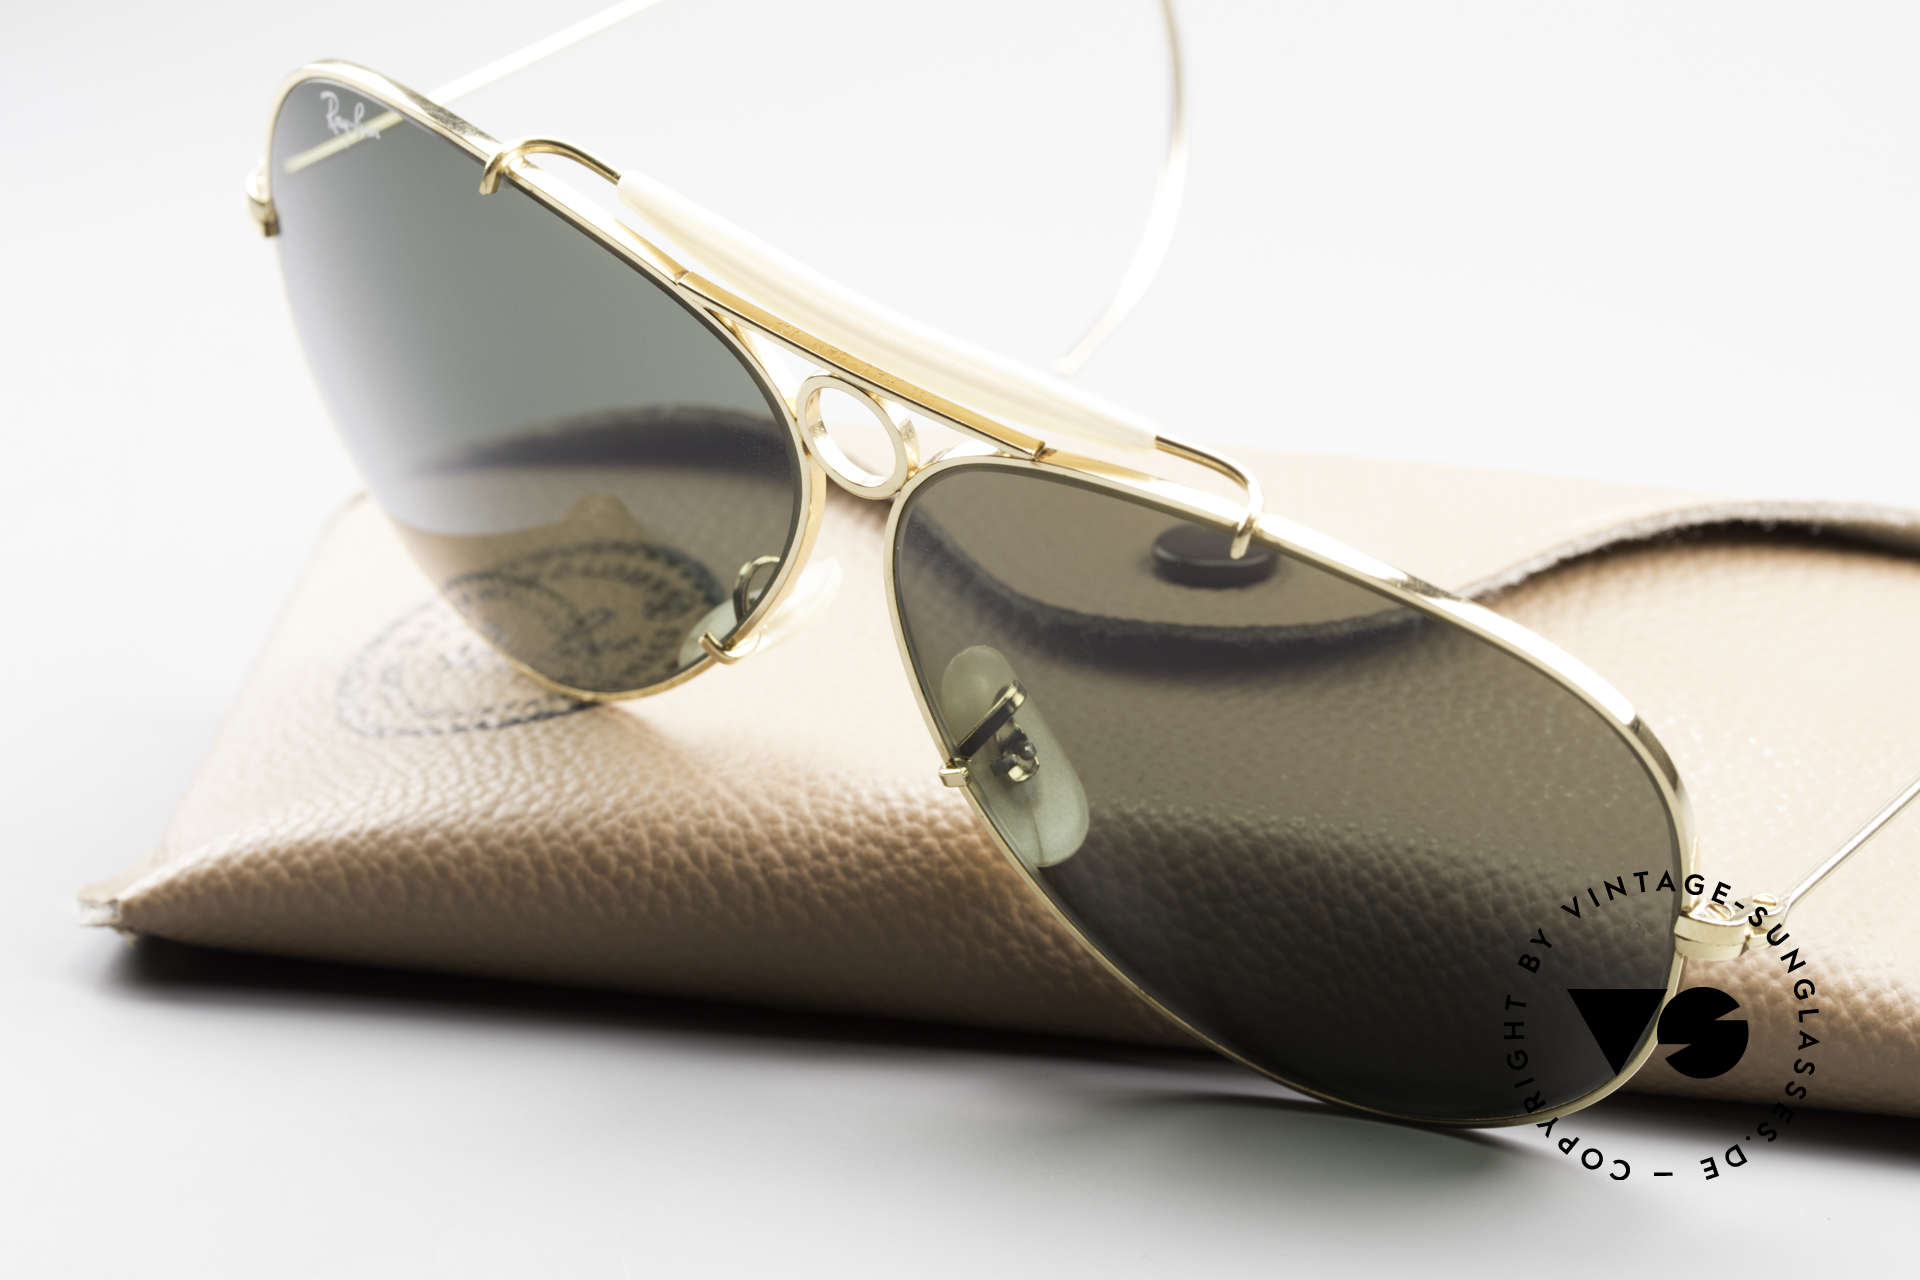 Ray Ban Shooter Sport G15 Bausch & Lomb Sun Lenses, NO RETRO frame, but authentic Bausch&Lomb, USA, Made for Men